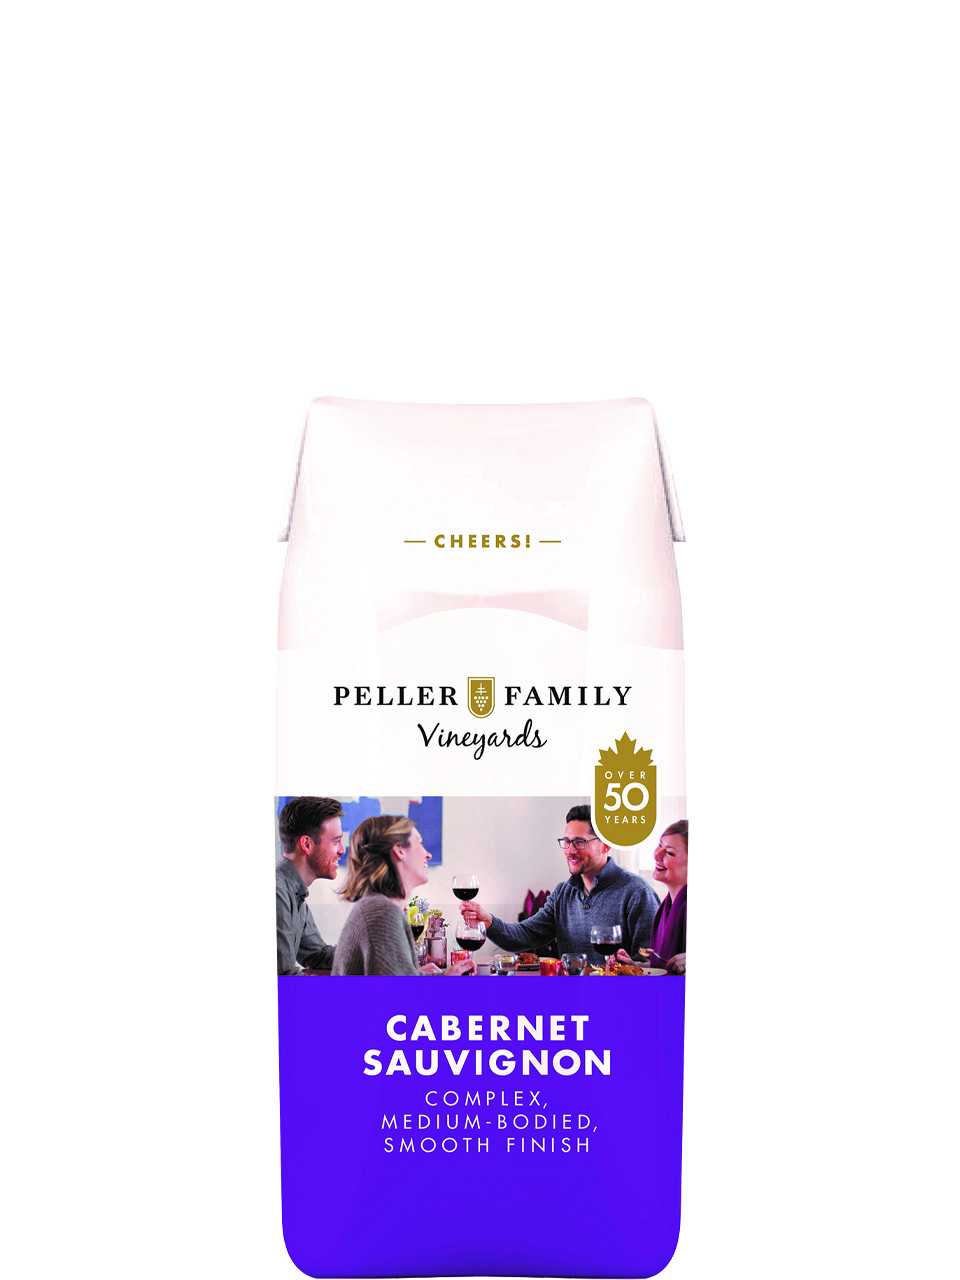 Peller Family Vineyards Cabernet Sauvignon